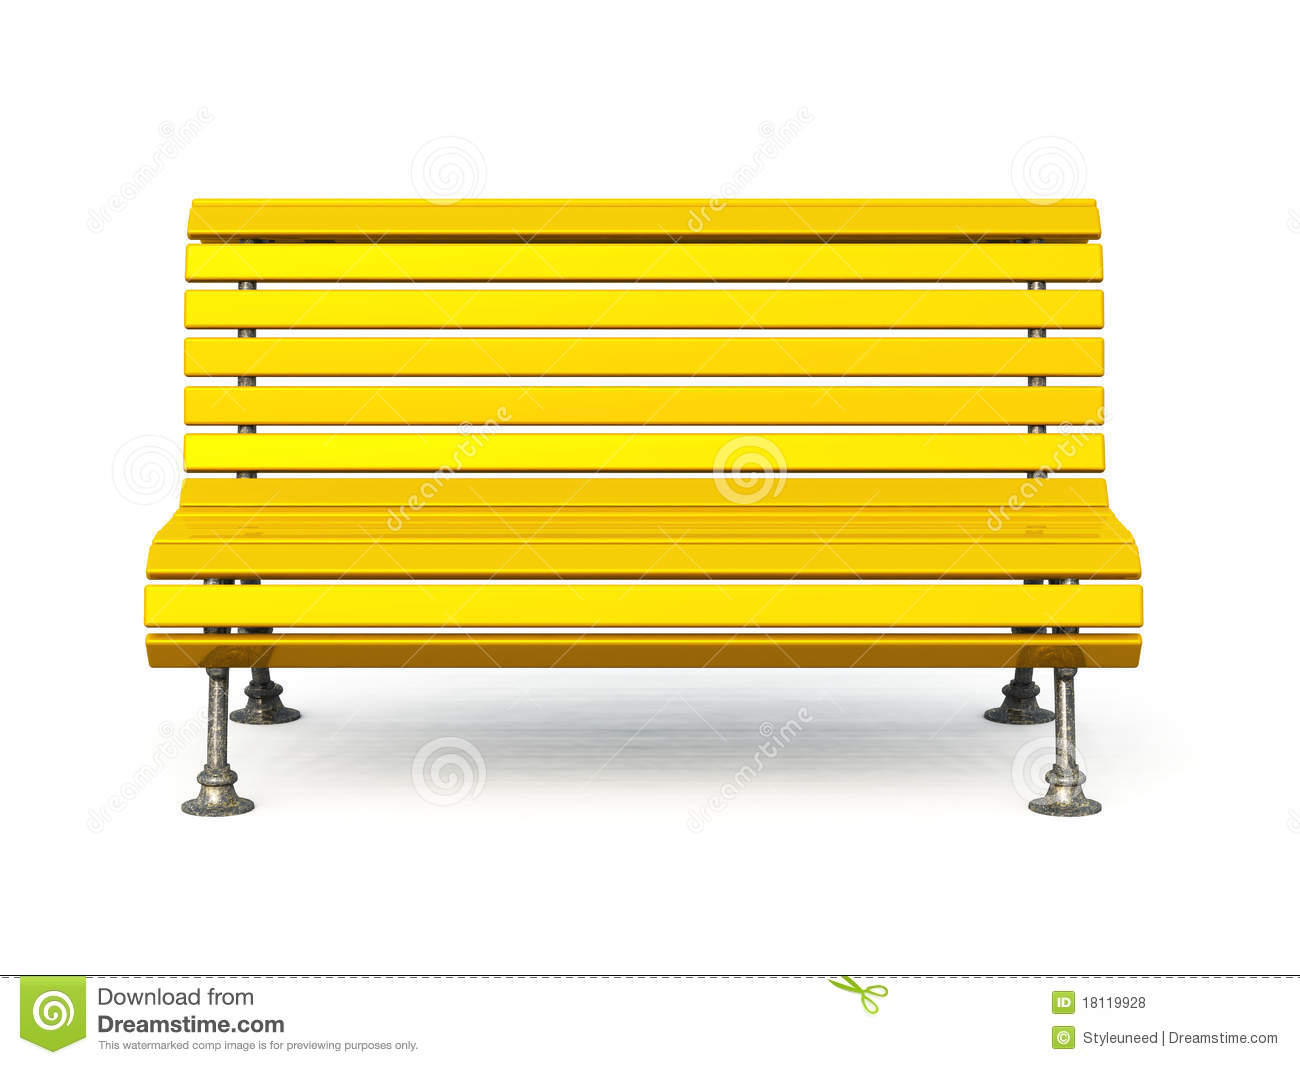 White parkh in amongst. Bench clipart colourful